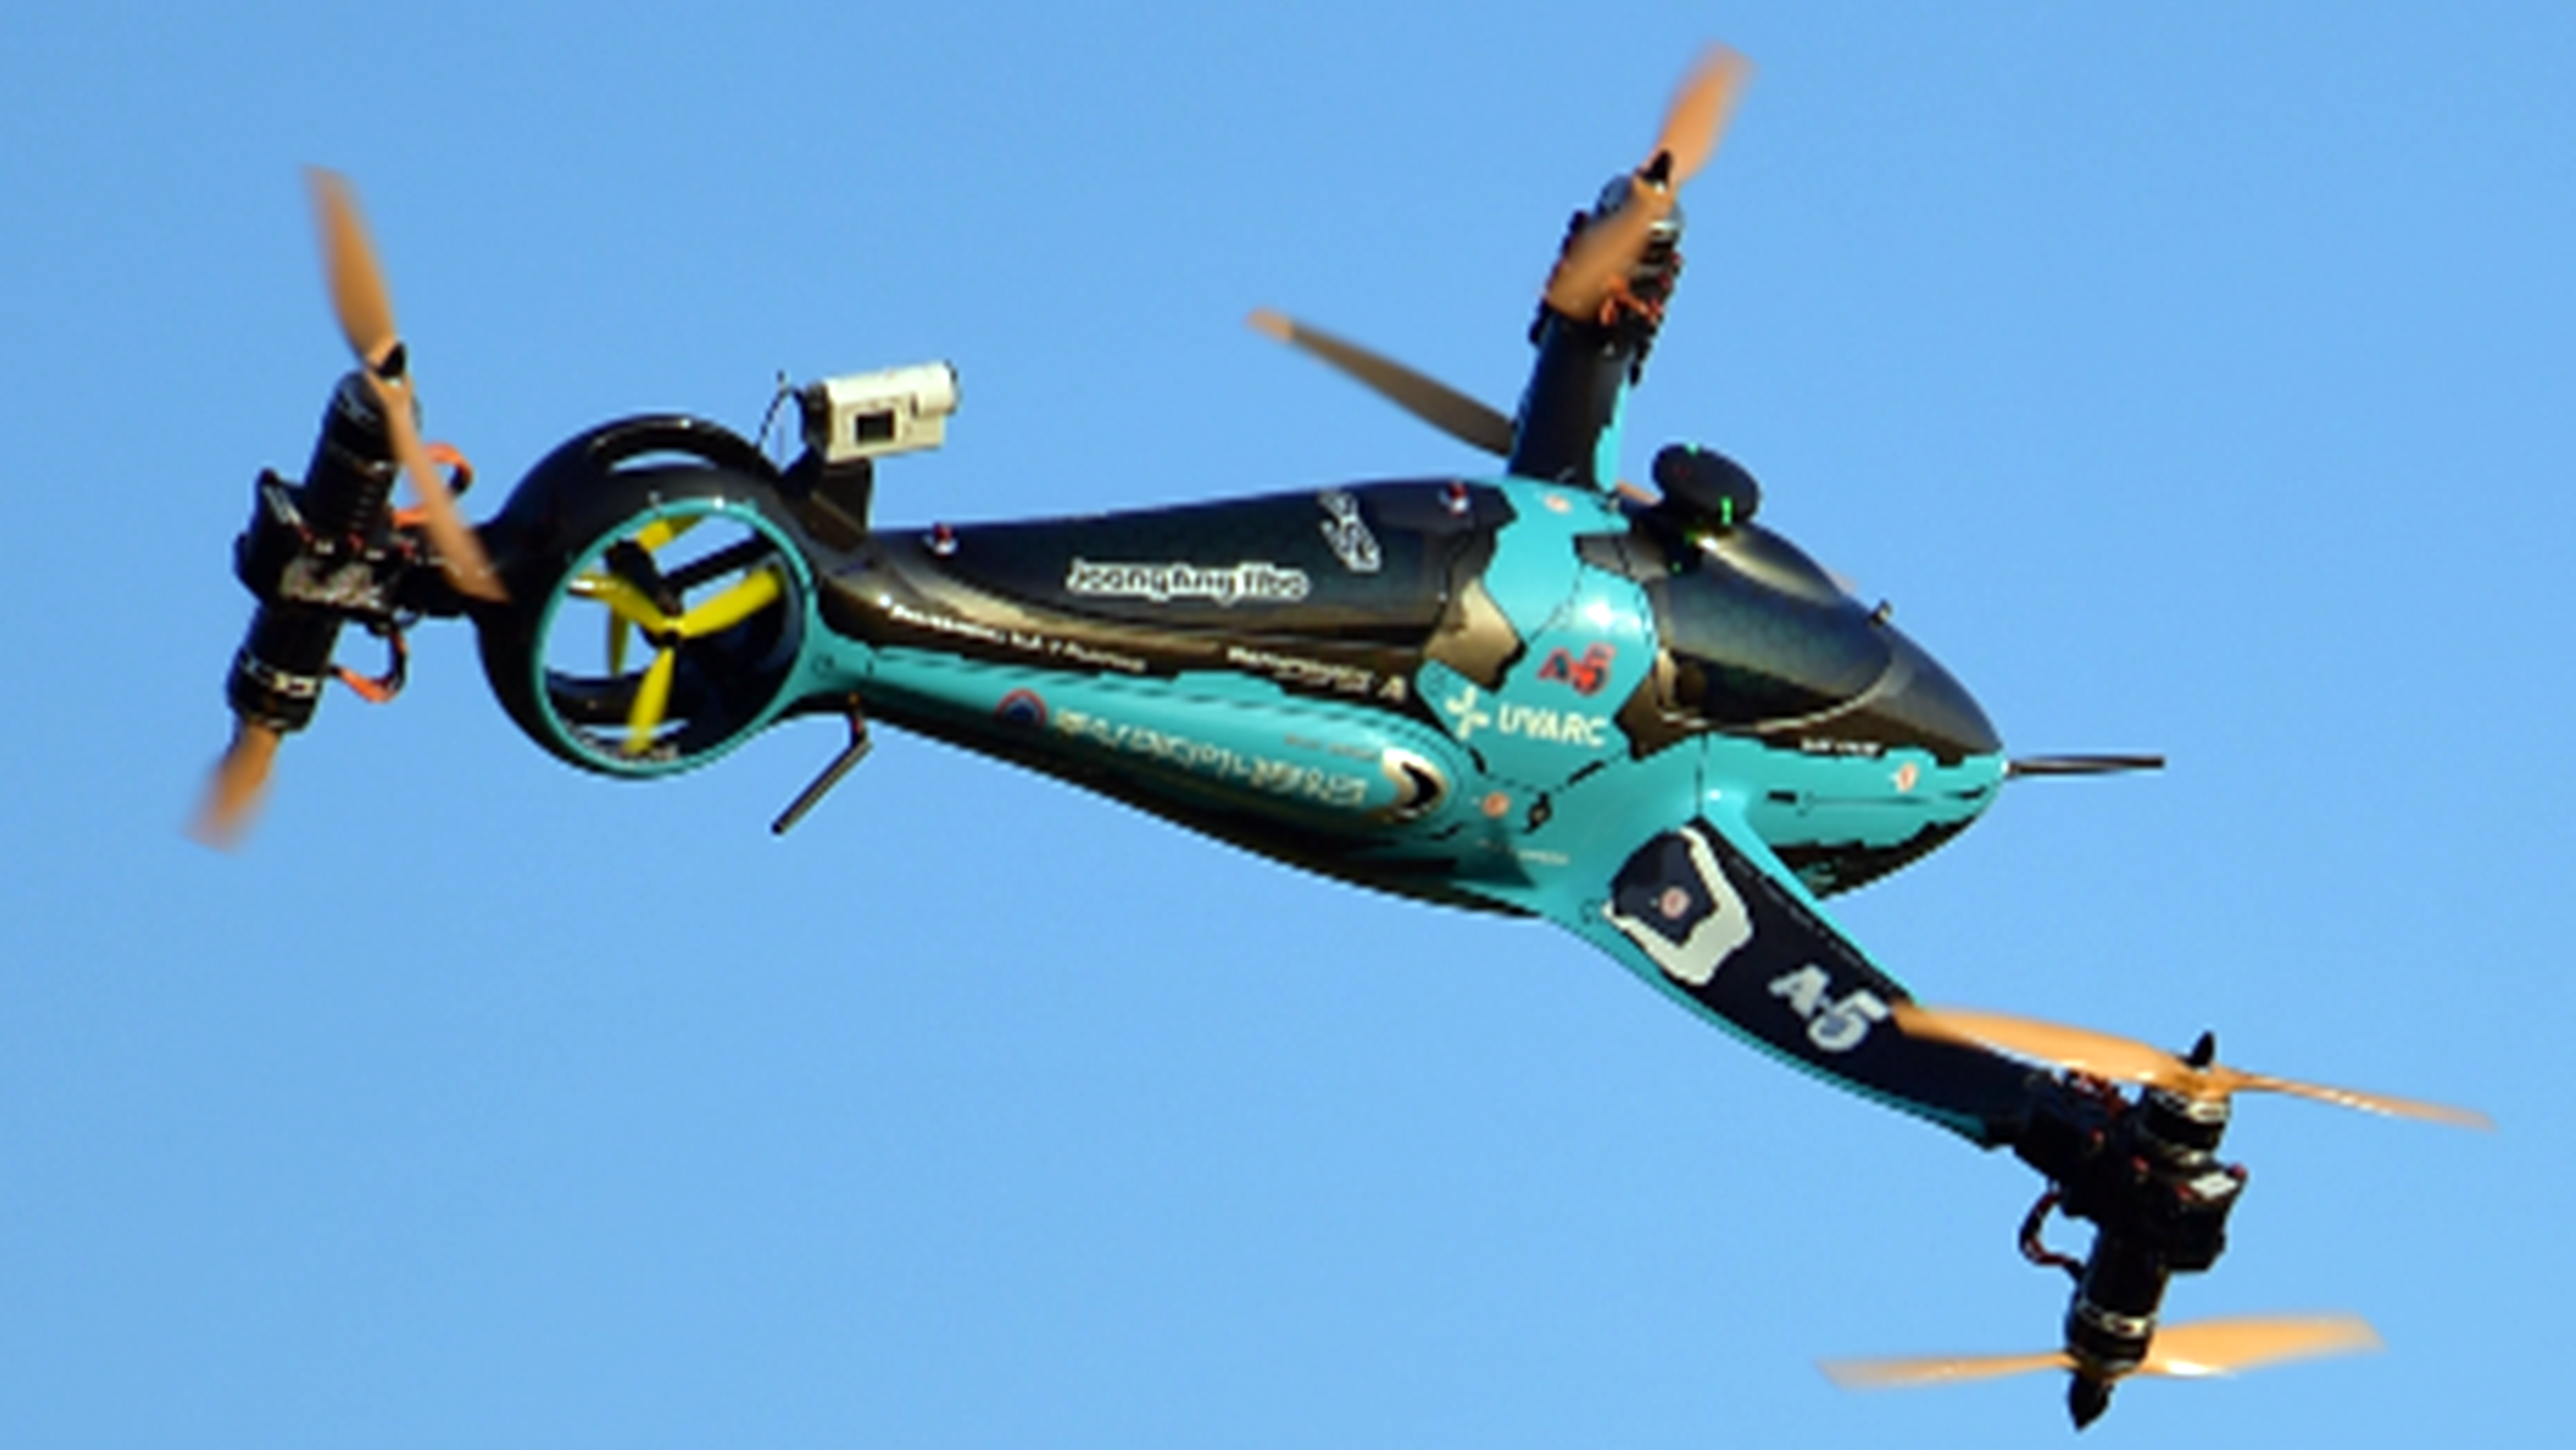 Pin by Chester DesVoigne on Tricopter Drone design